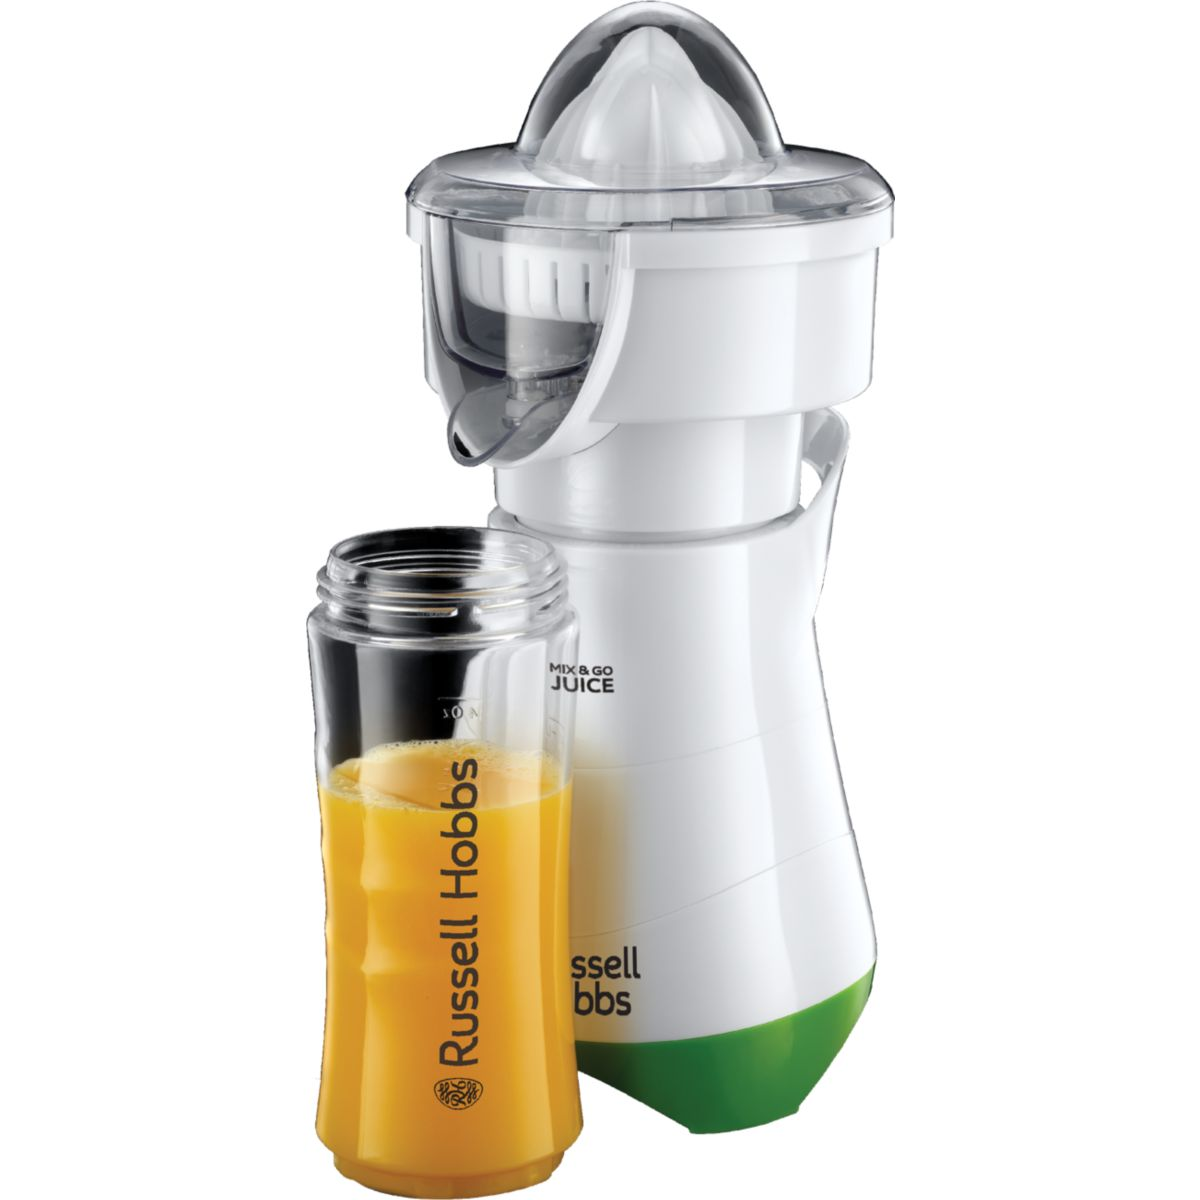 Blender RUSSELL HOBBS Mix & Go Juice Exp